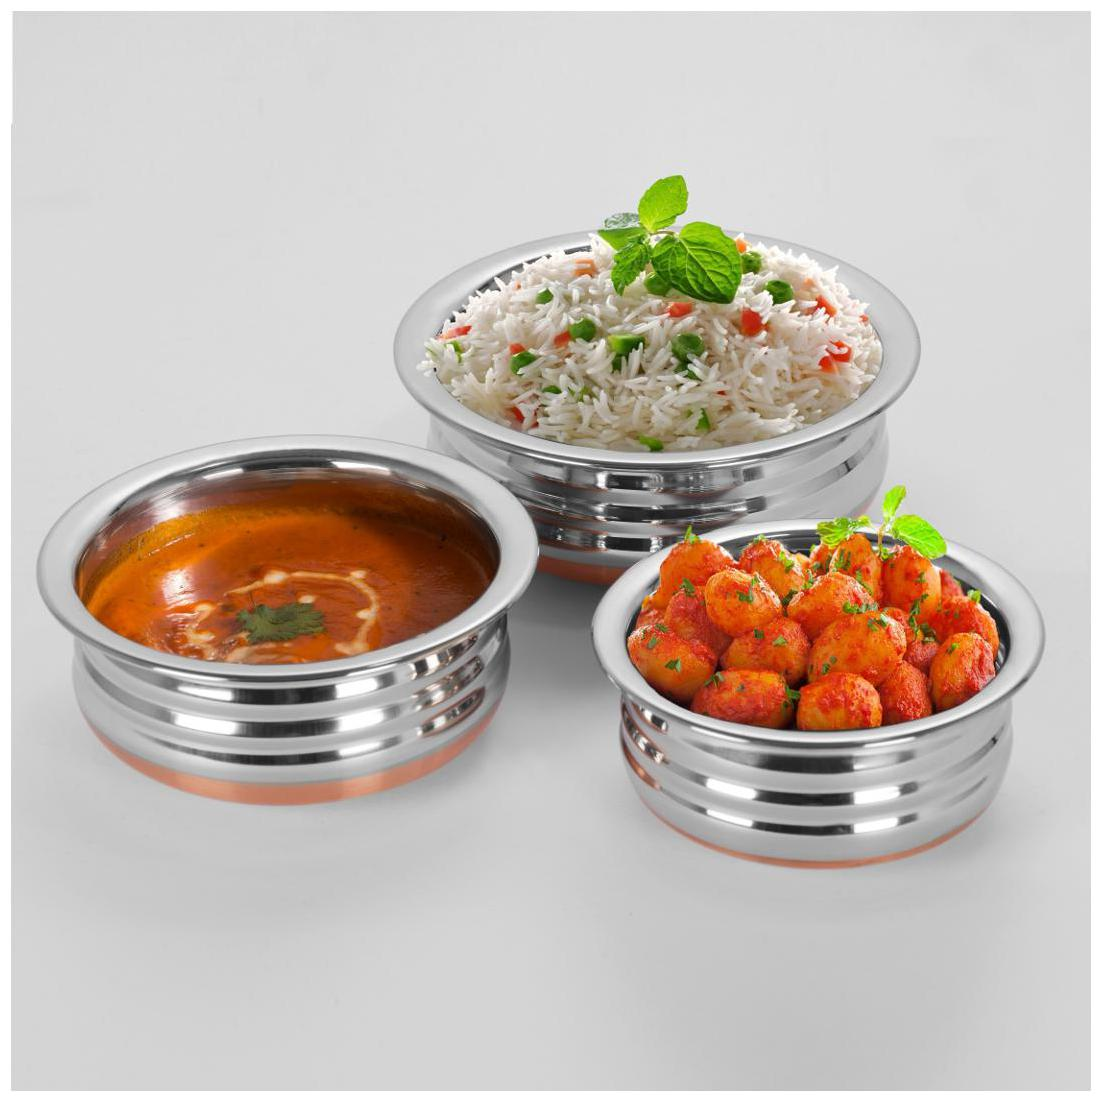 Sumeet 3Pc Set of Stainless Steel Copper URLI / Cookware / Serveware...